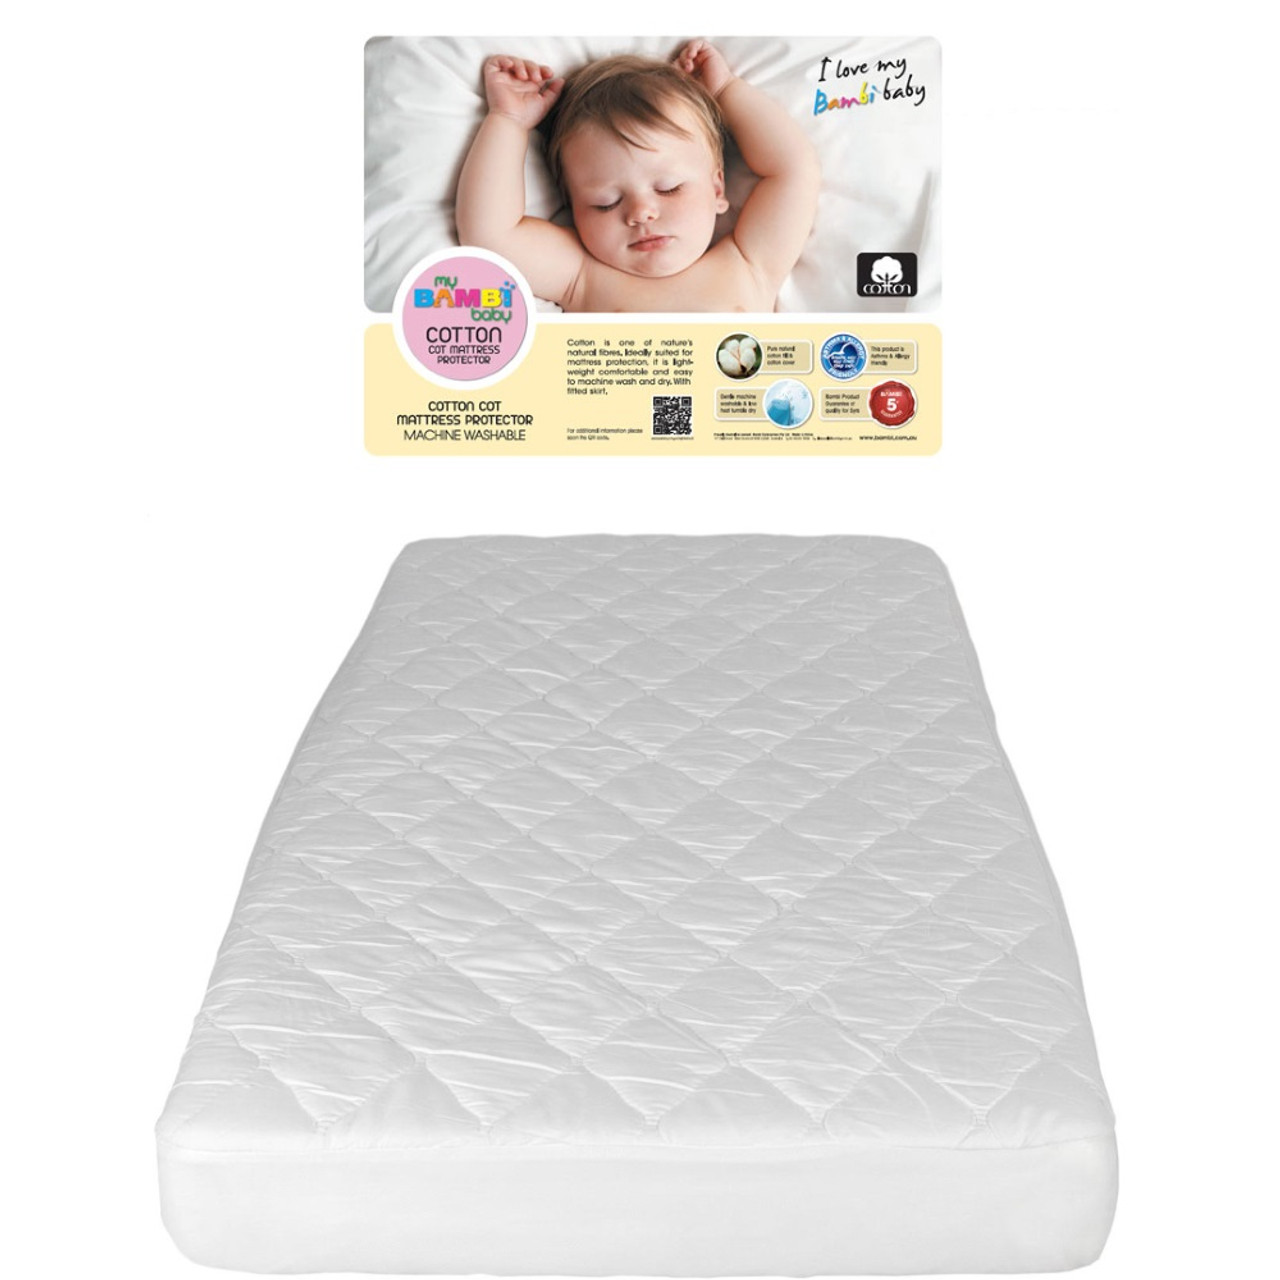 Bambi Cotton Cot Mattress Protector